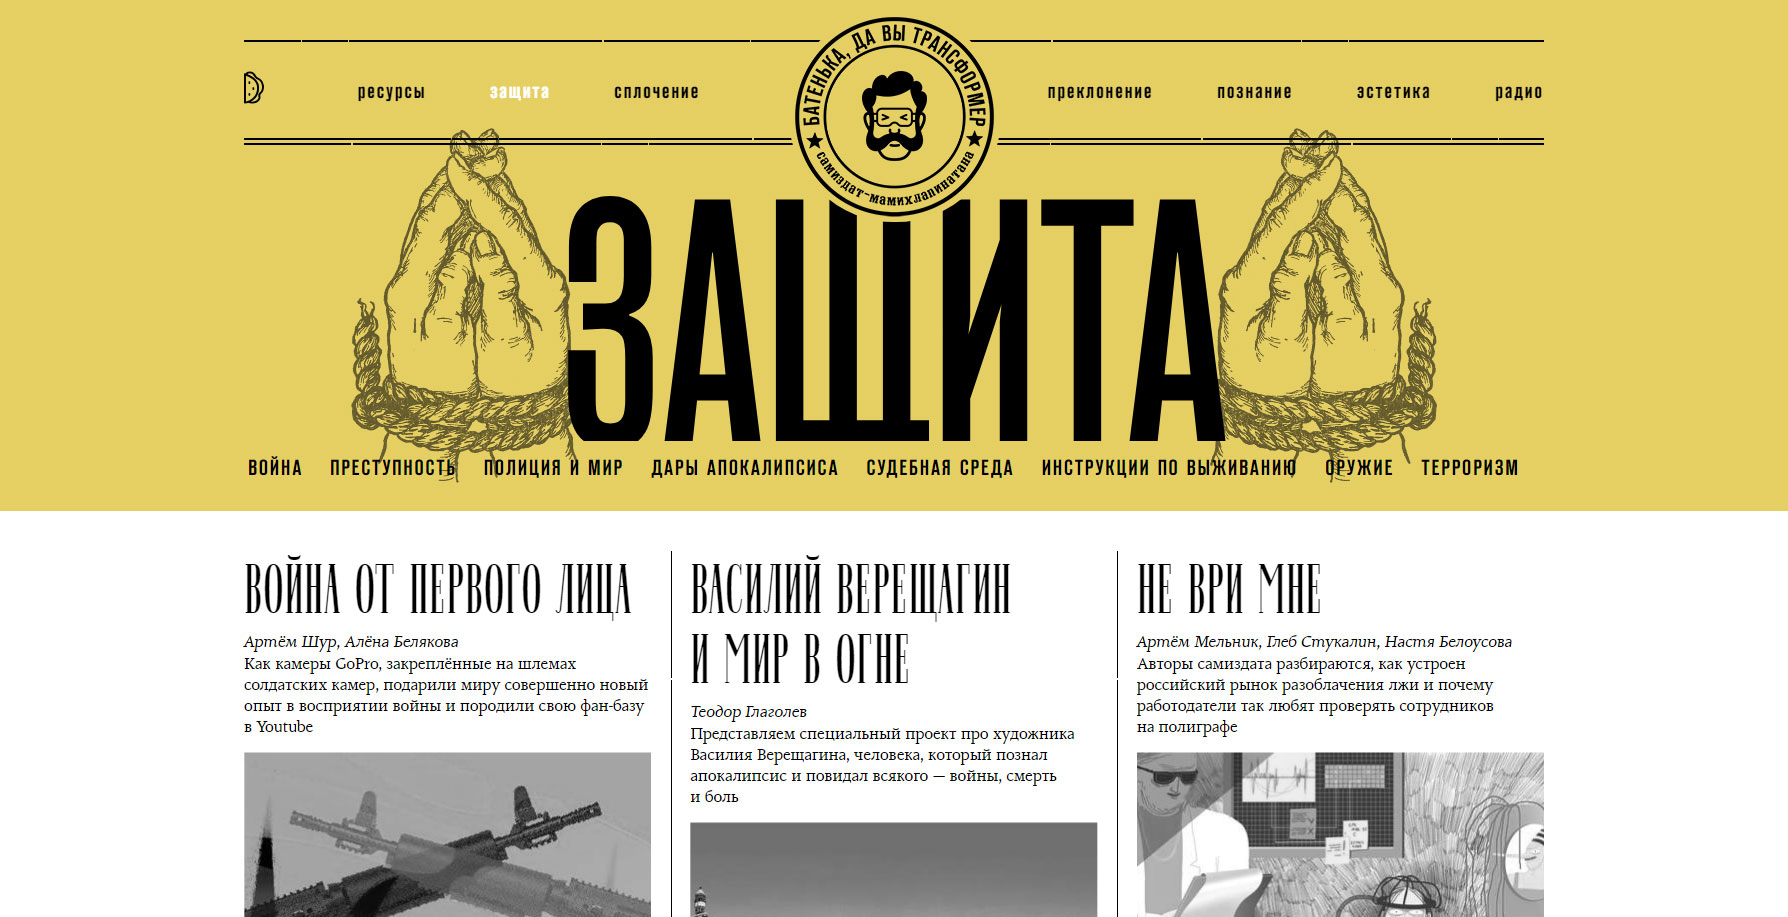 Batenka, you are Transformer - Website of the Day